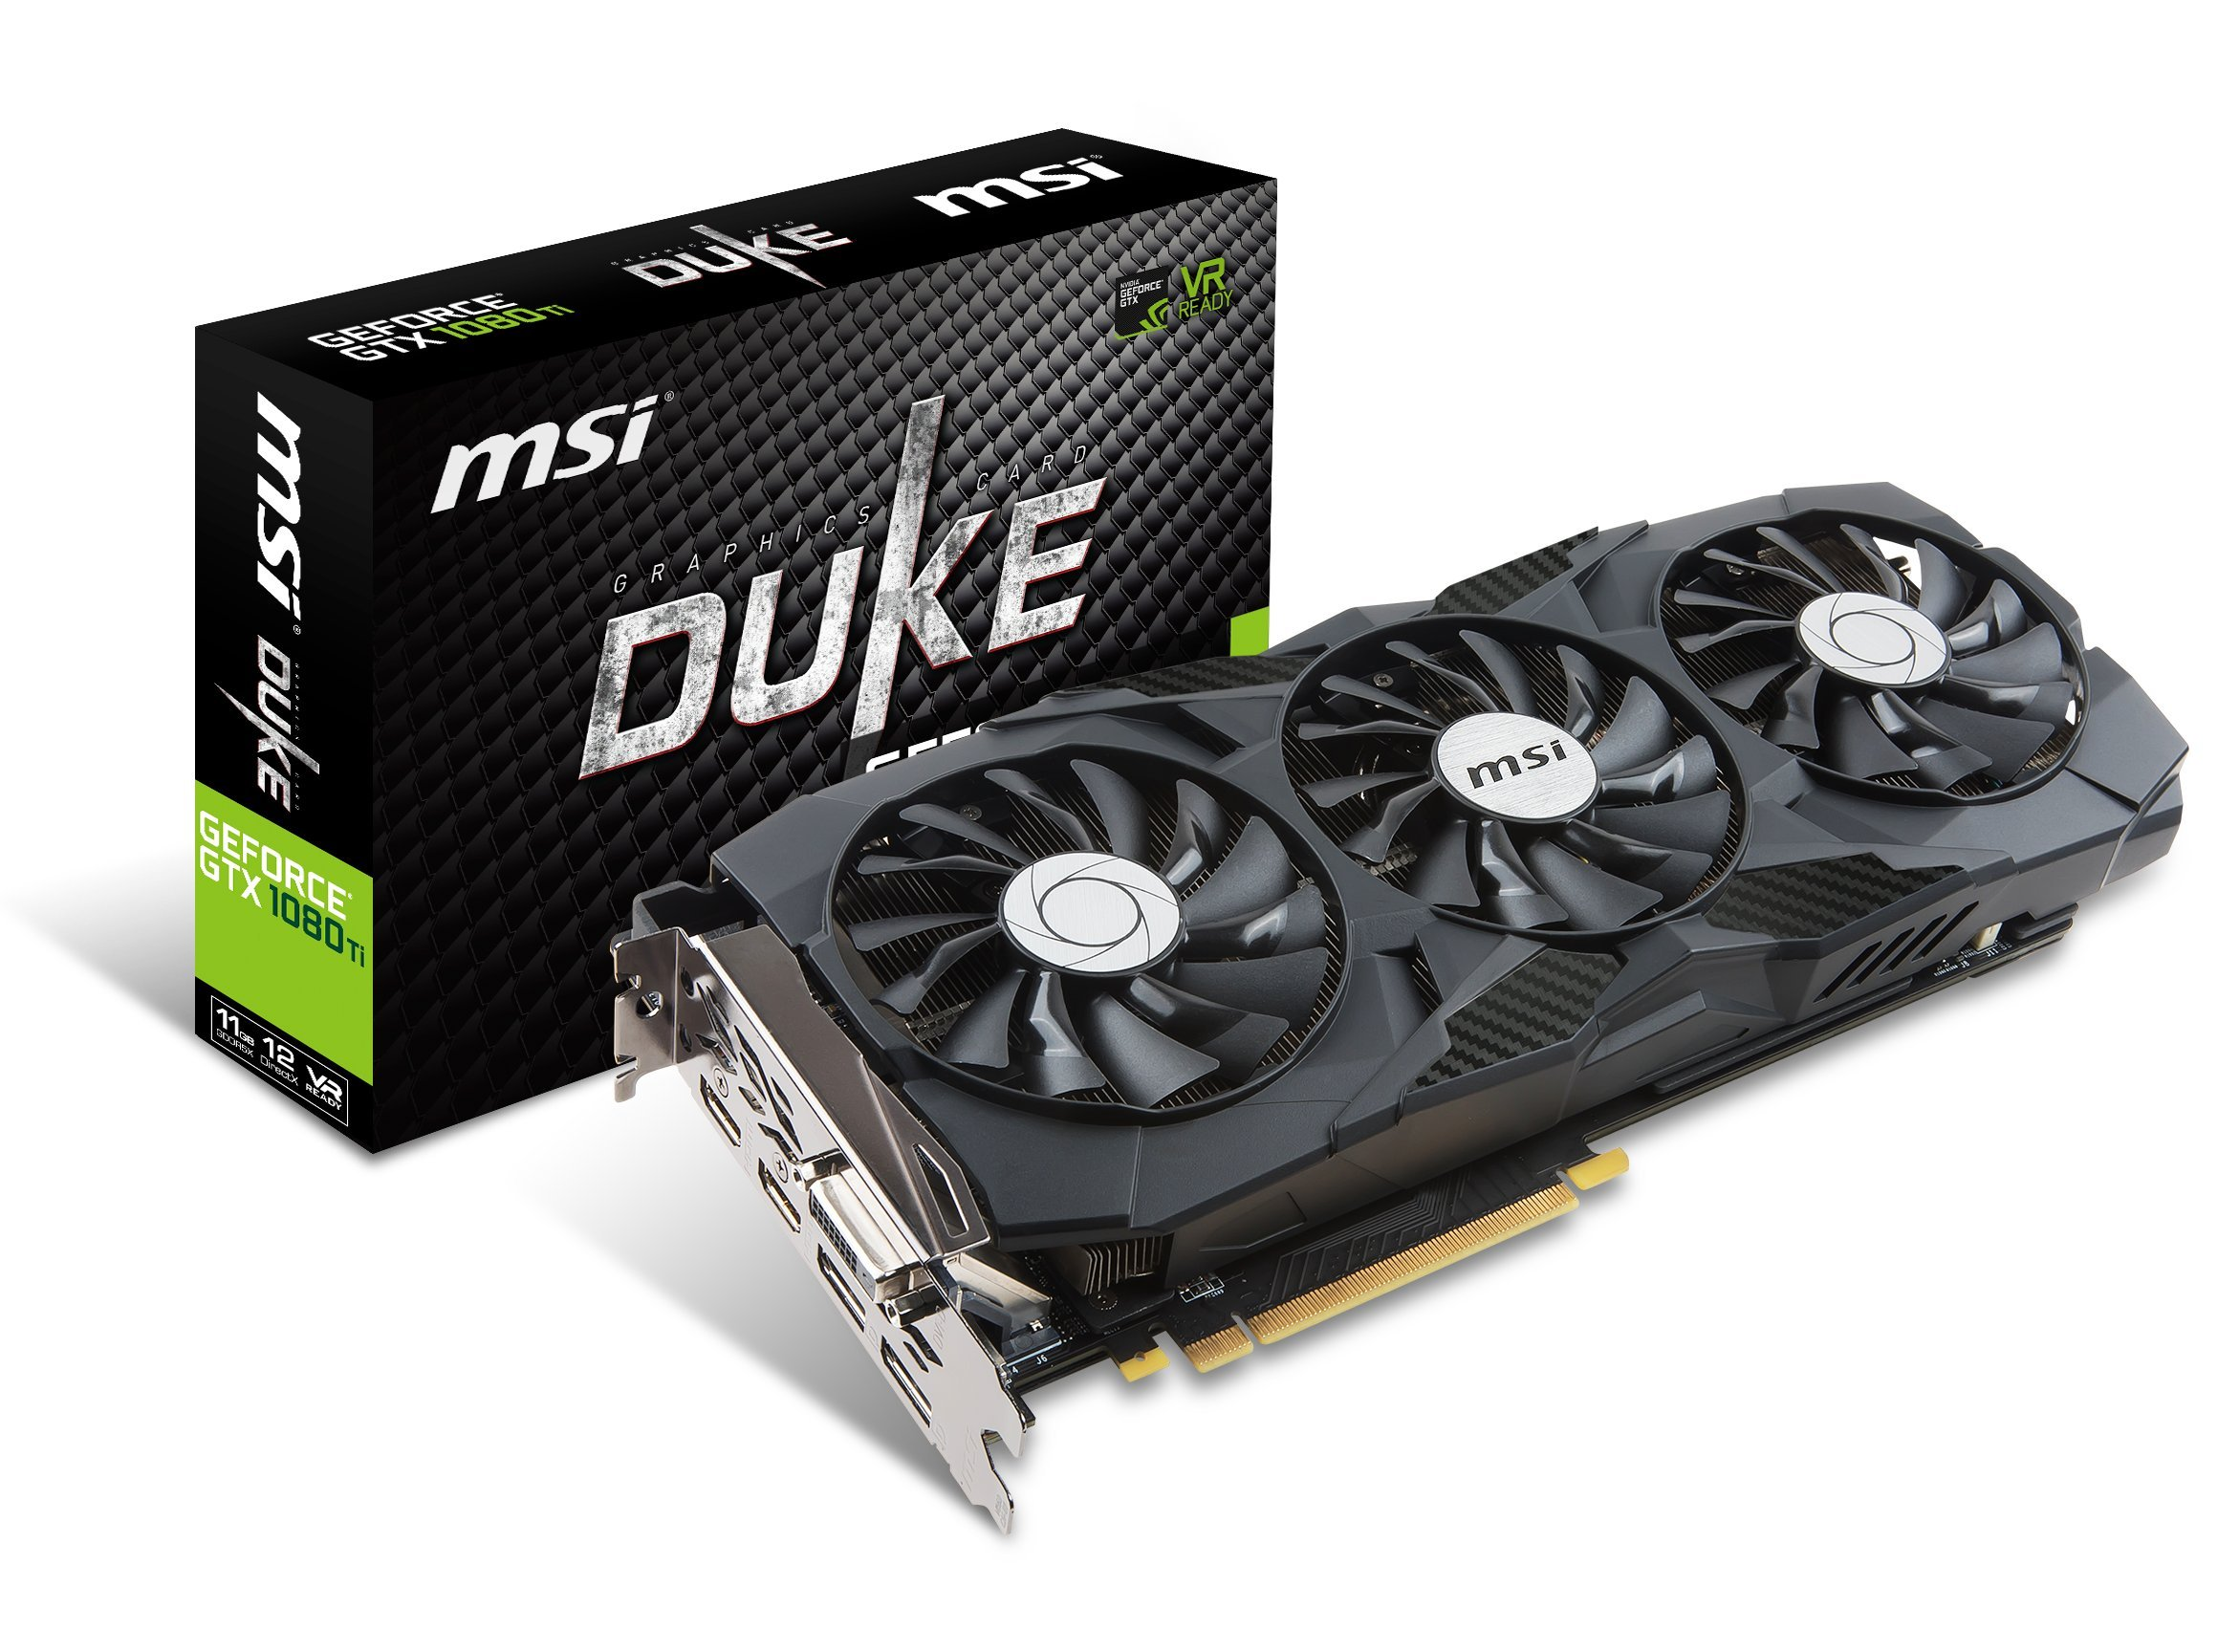 MSI GTX 1080 TI DUKE 11G OC Graphic Cards by MSI